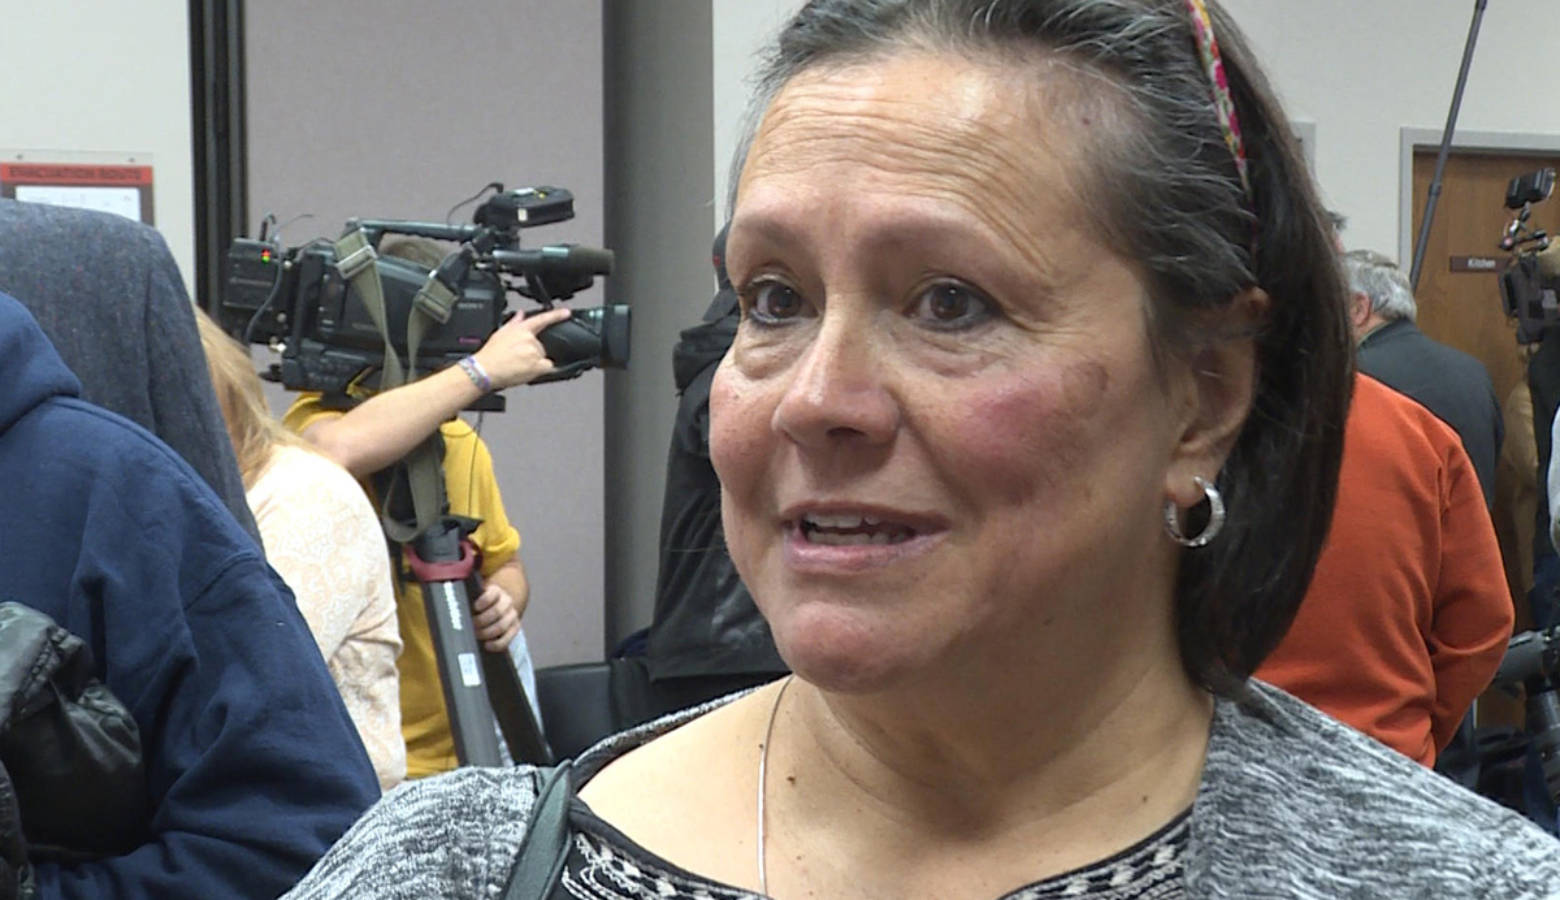 Frances Denney is one of two residents representing the Franklin community in the class action lawsuit. (Rebecca Thiele/IPB News)